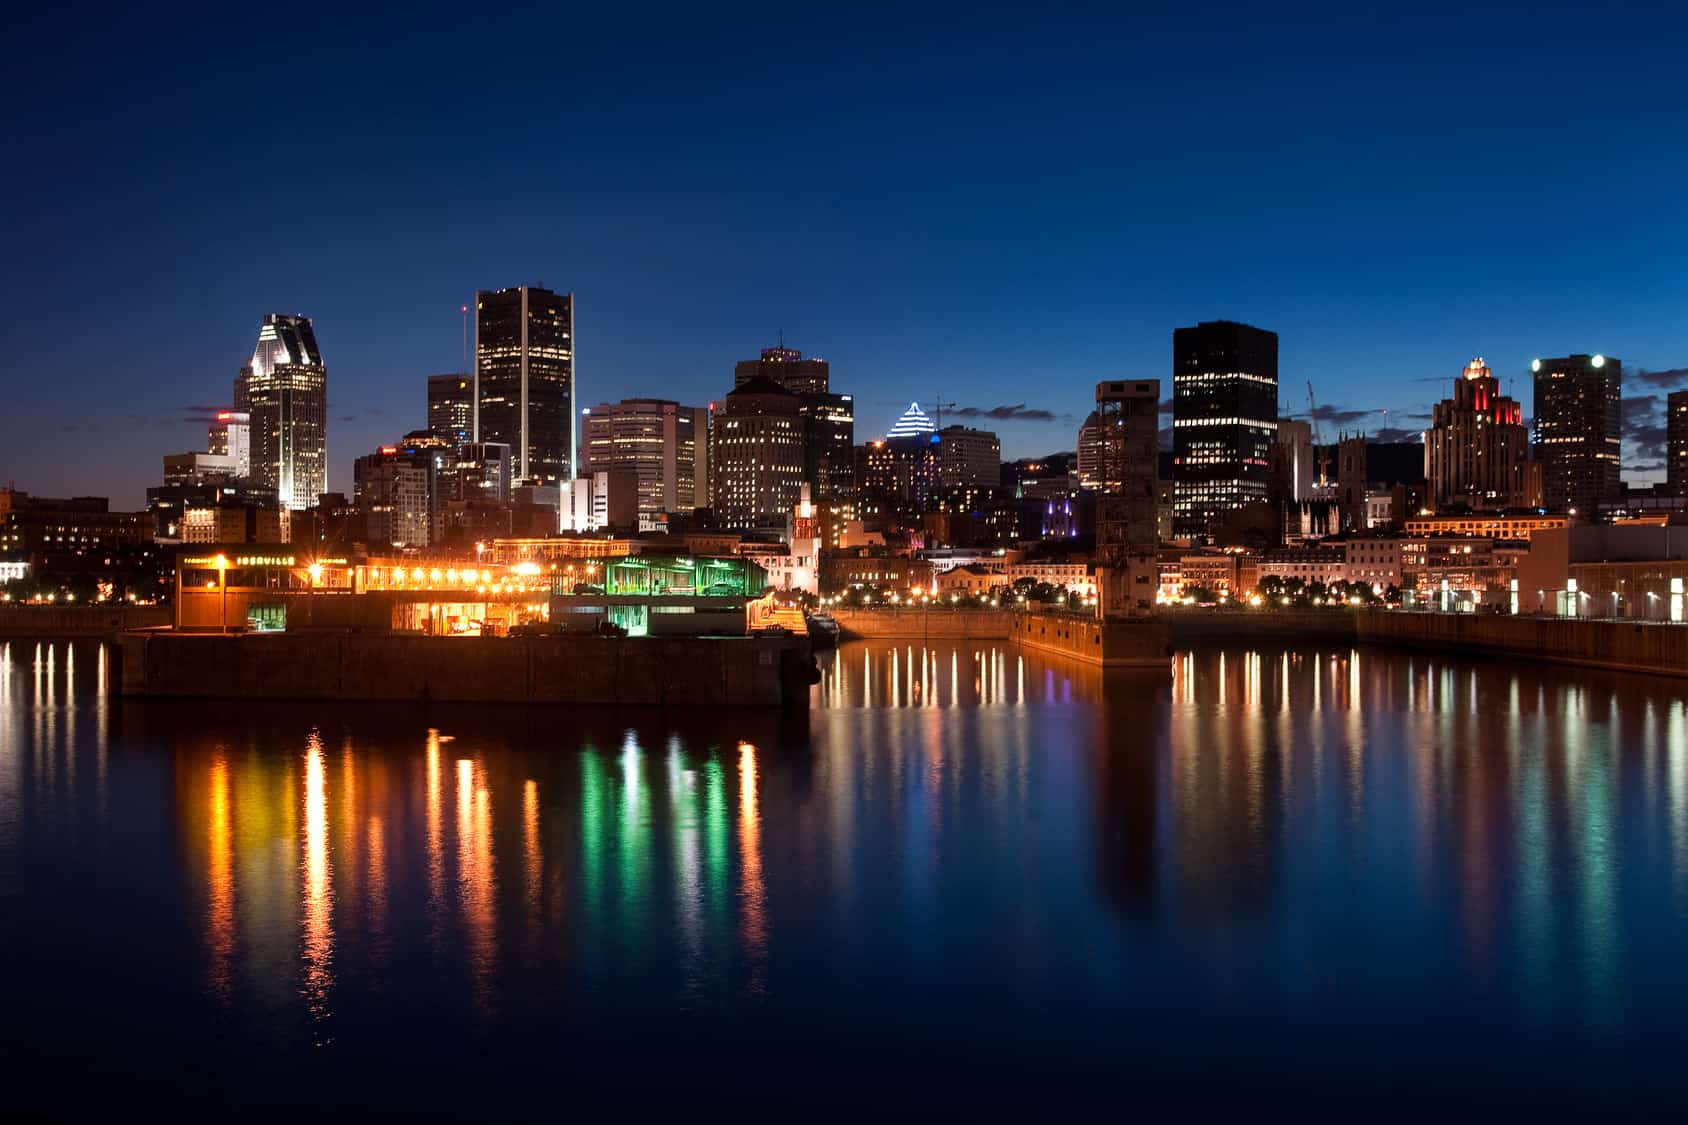 City of Montreal at night